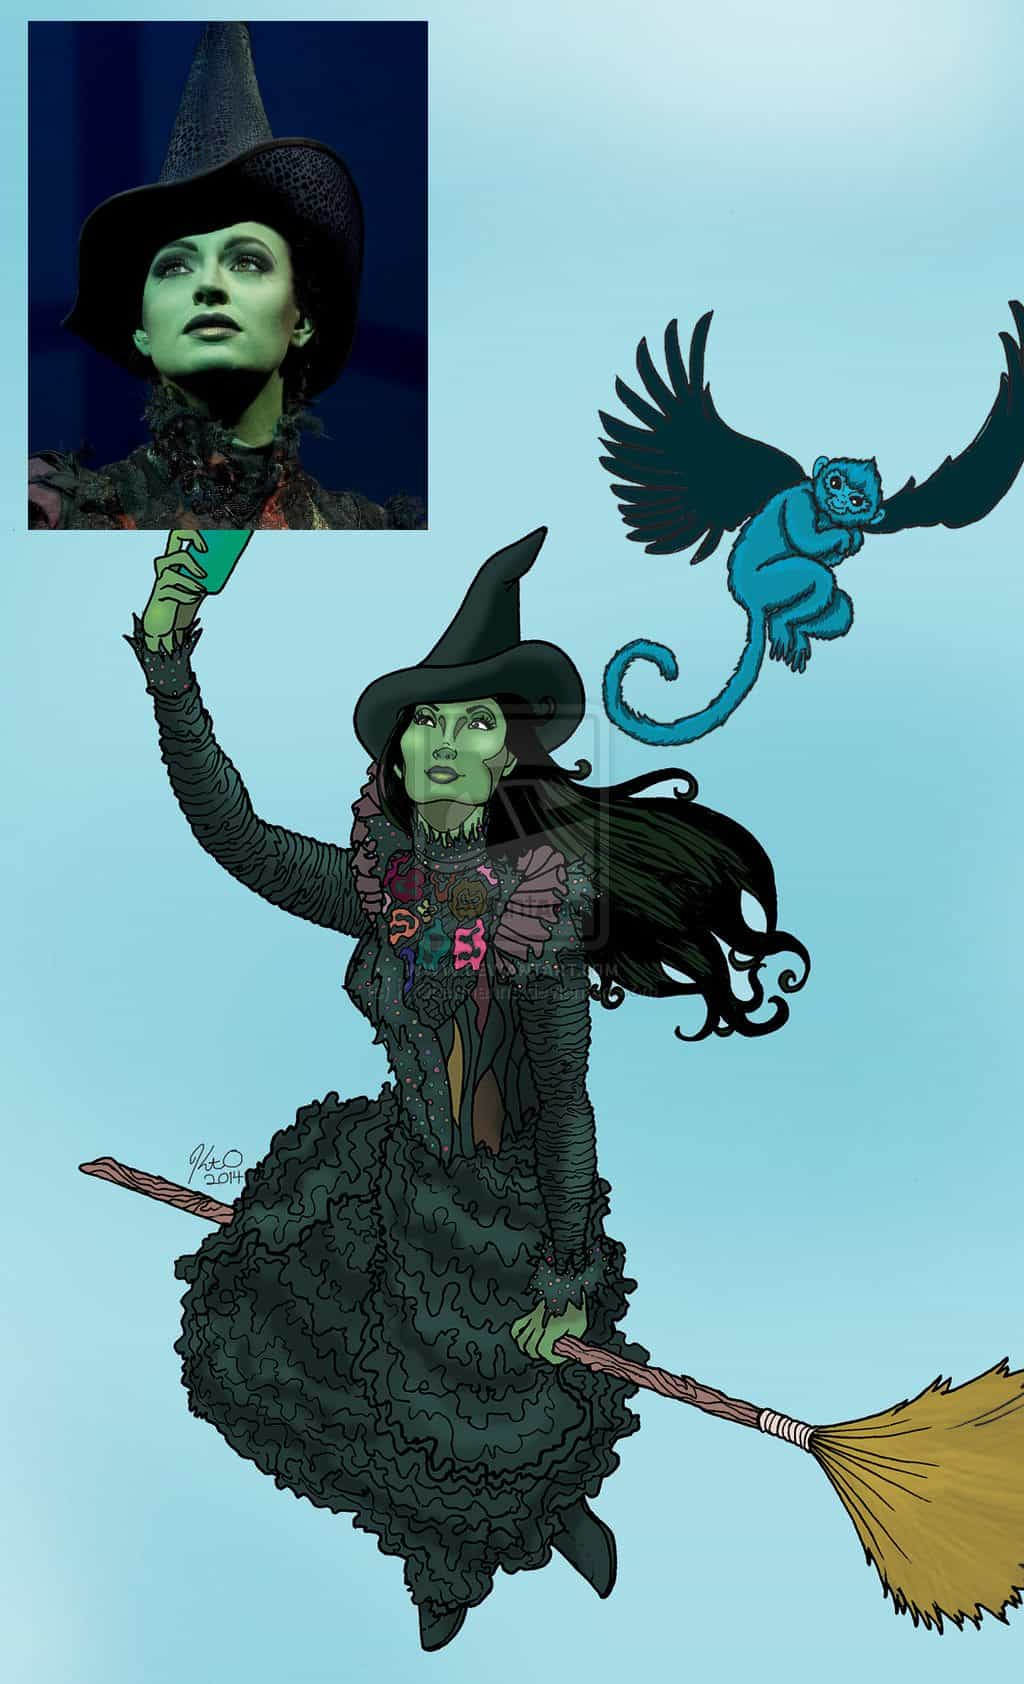 The Wicked Witch by Kt